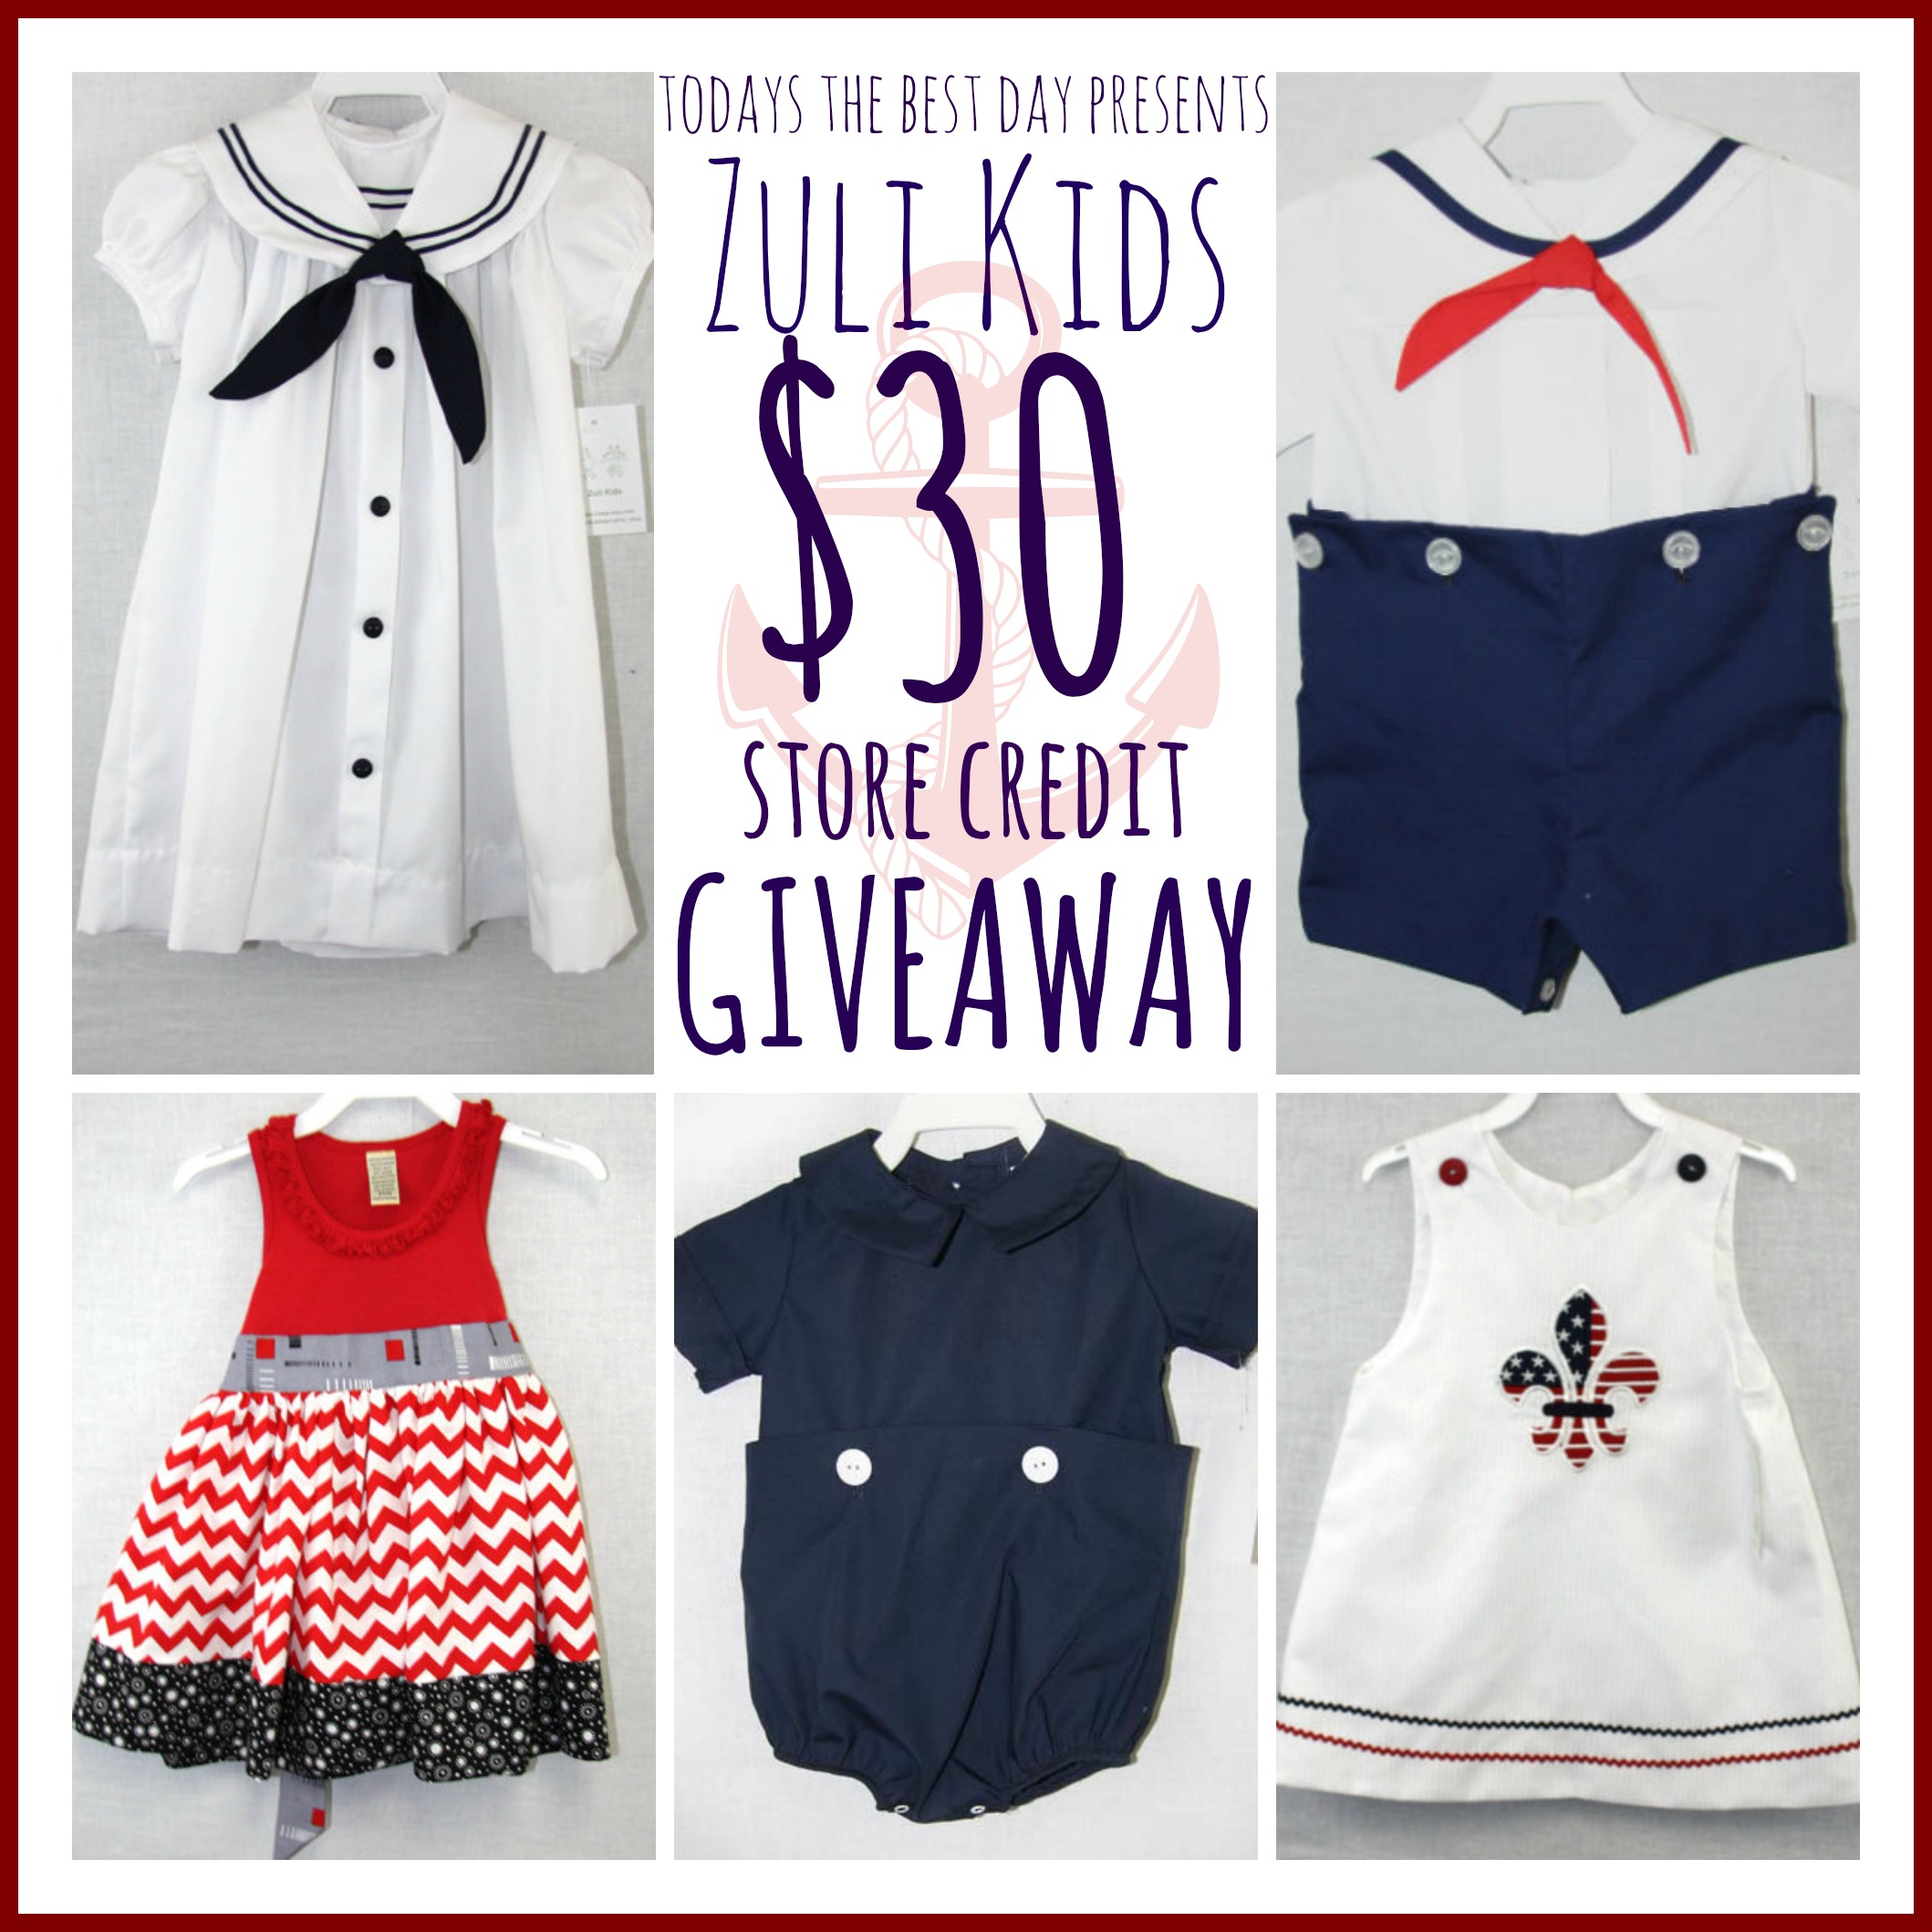 e21576a9a6b8 Zuli Kids - Store Credit Giveaway - Today s the Best Day